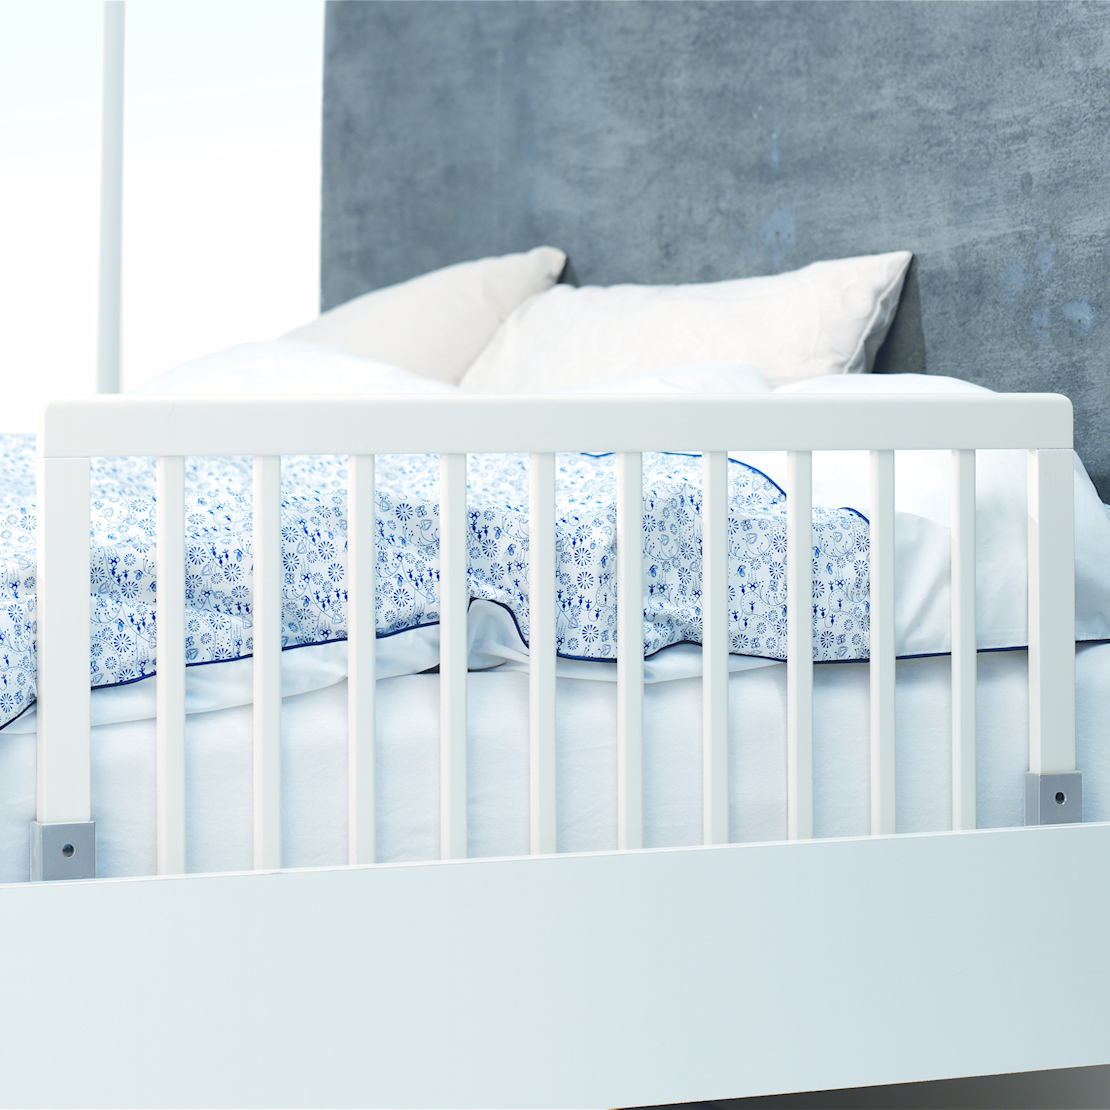 Very Impressive portraiture of  BABYDAN WHITE SAFETY WOODEN BED RAIL GUARD TO FIT JUNIOR & CHILDS BEDS with #355A96 color and 1110x1110 pixels